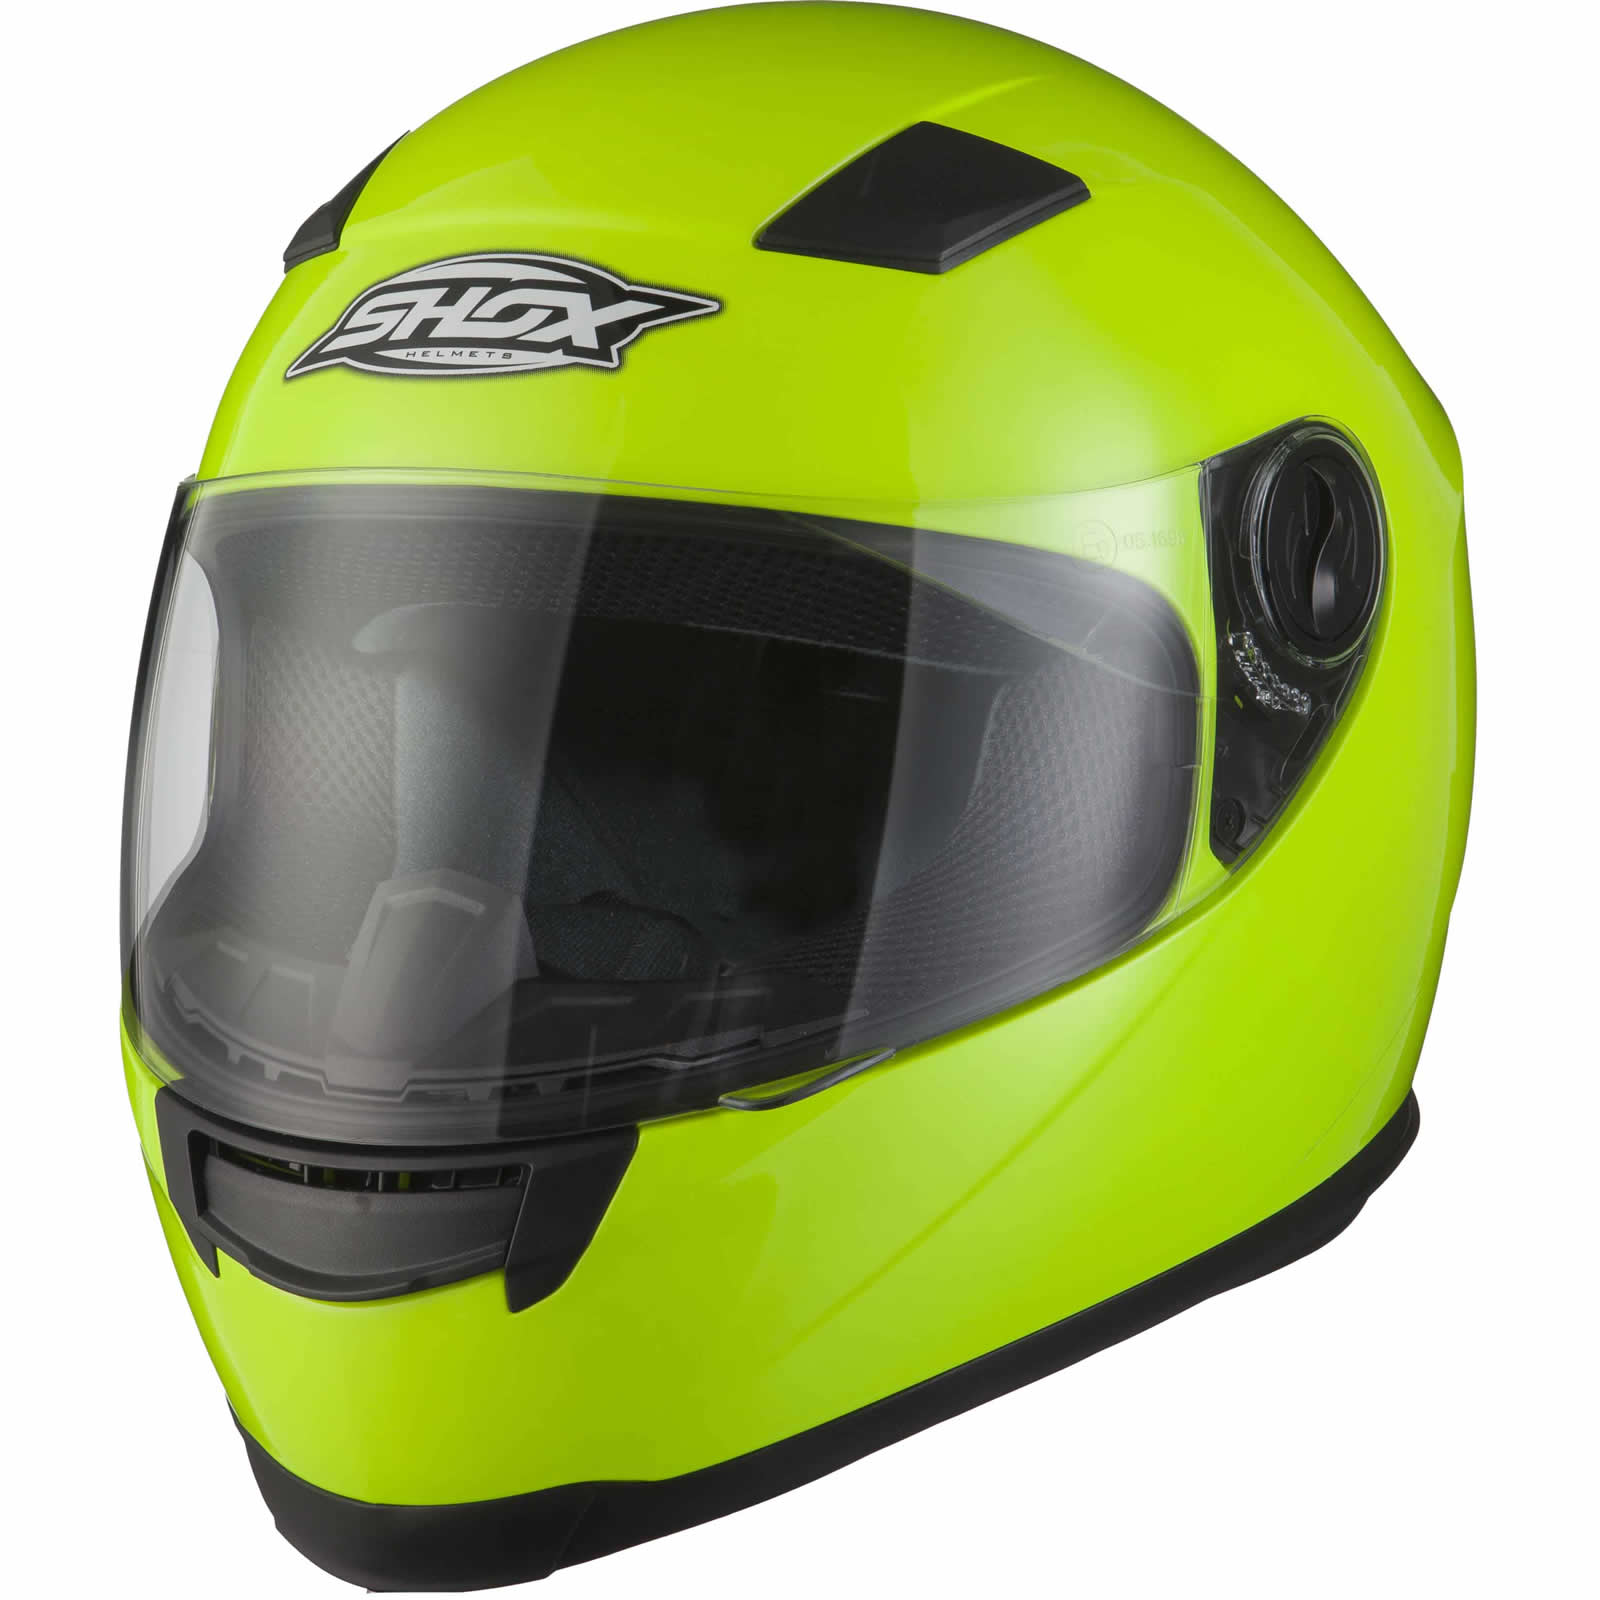 Full Motorcycle Helmet >> Shox Sniper Full Face ACU Gold Approved Motorbike Motorcycle Bike Crash Helmet | eBay